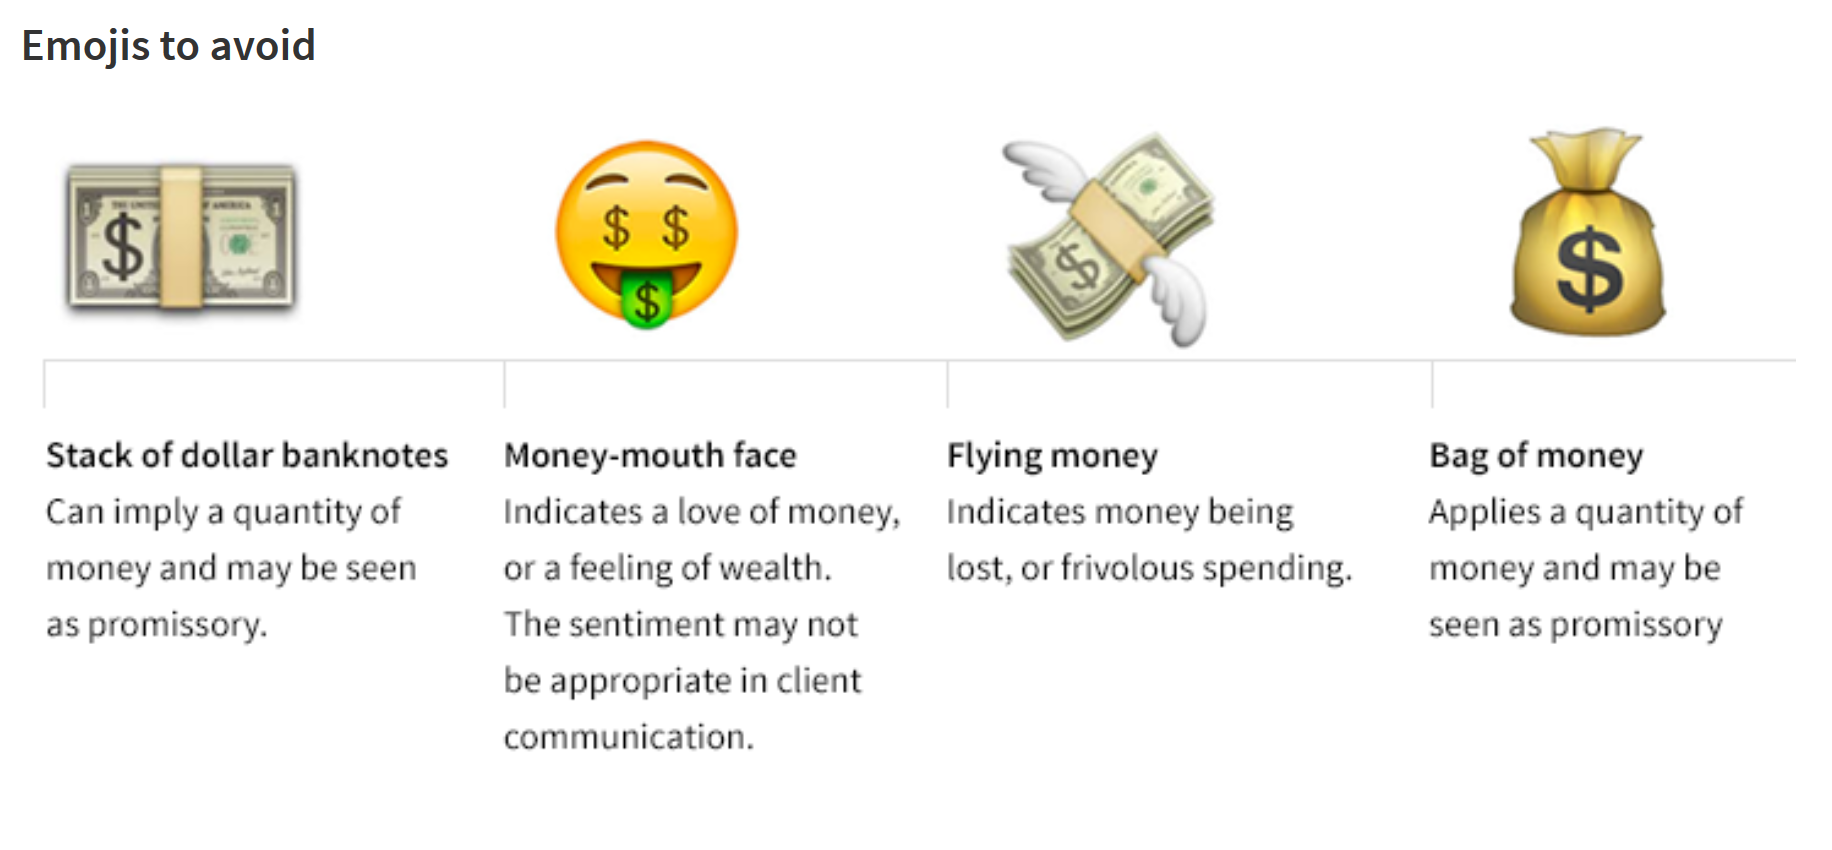 Emojis to Avoid: Stack of dollars, money-mouth face, flying money, bag of money. Soure: Putnam